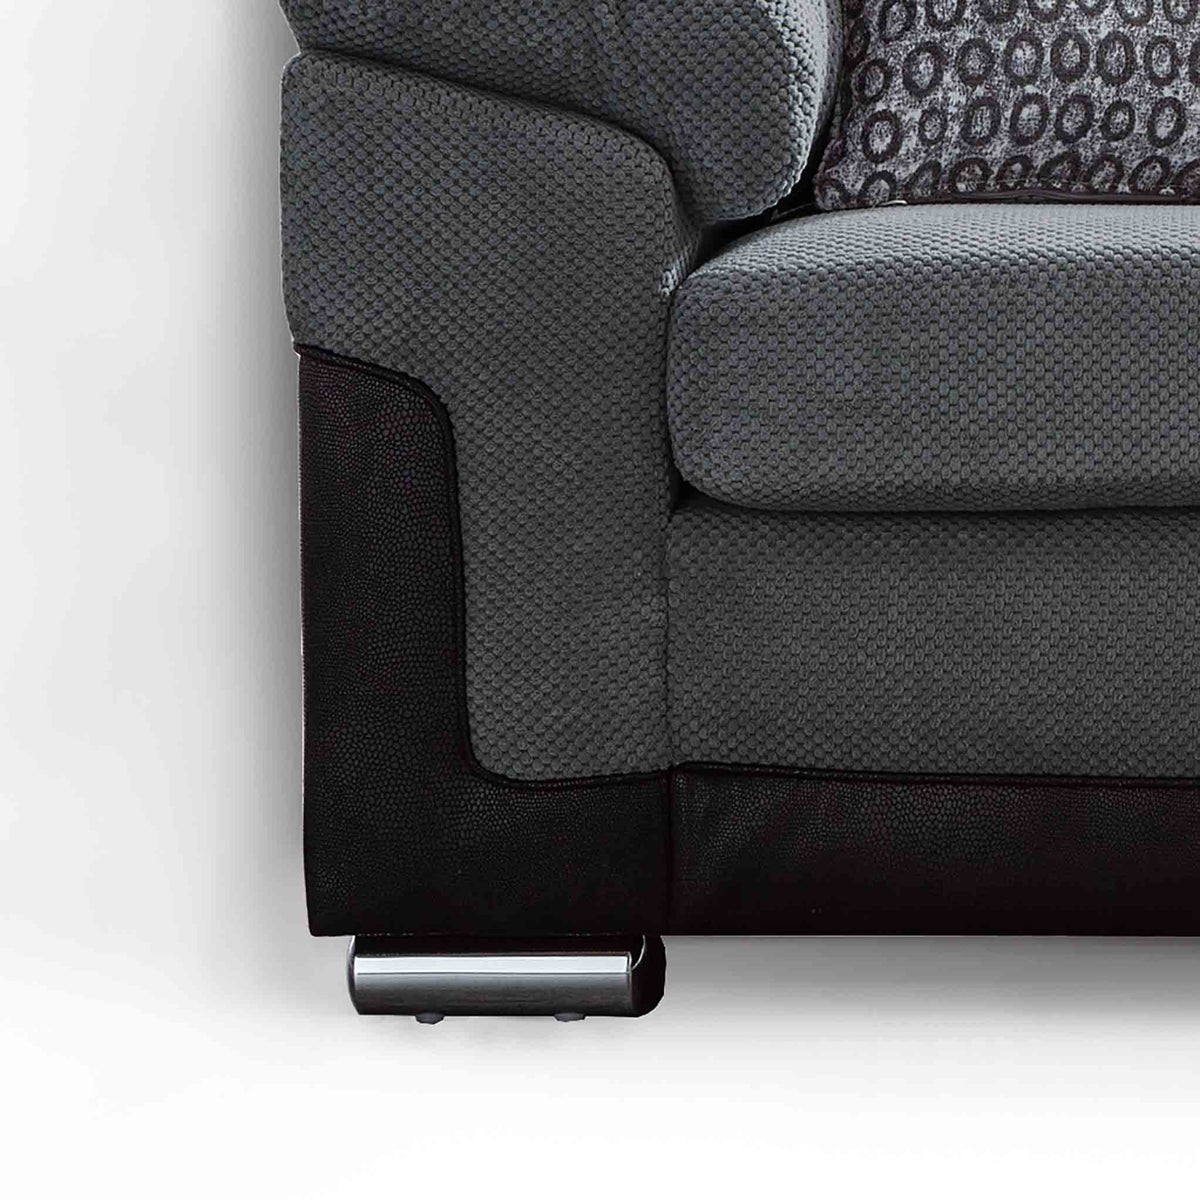 close up of the stainless steel feet on the Ameba Charcoal 3 Seater Fabric & Faux Leather Sofa